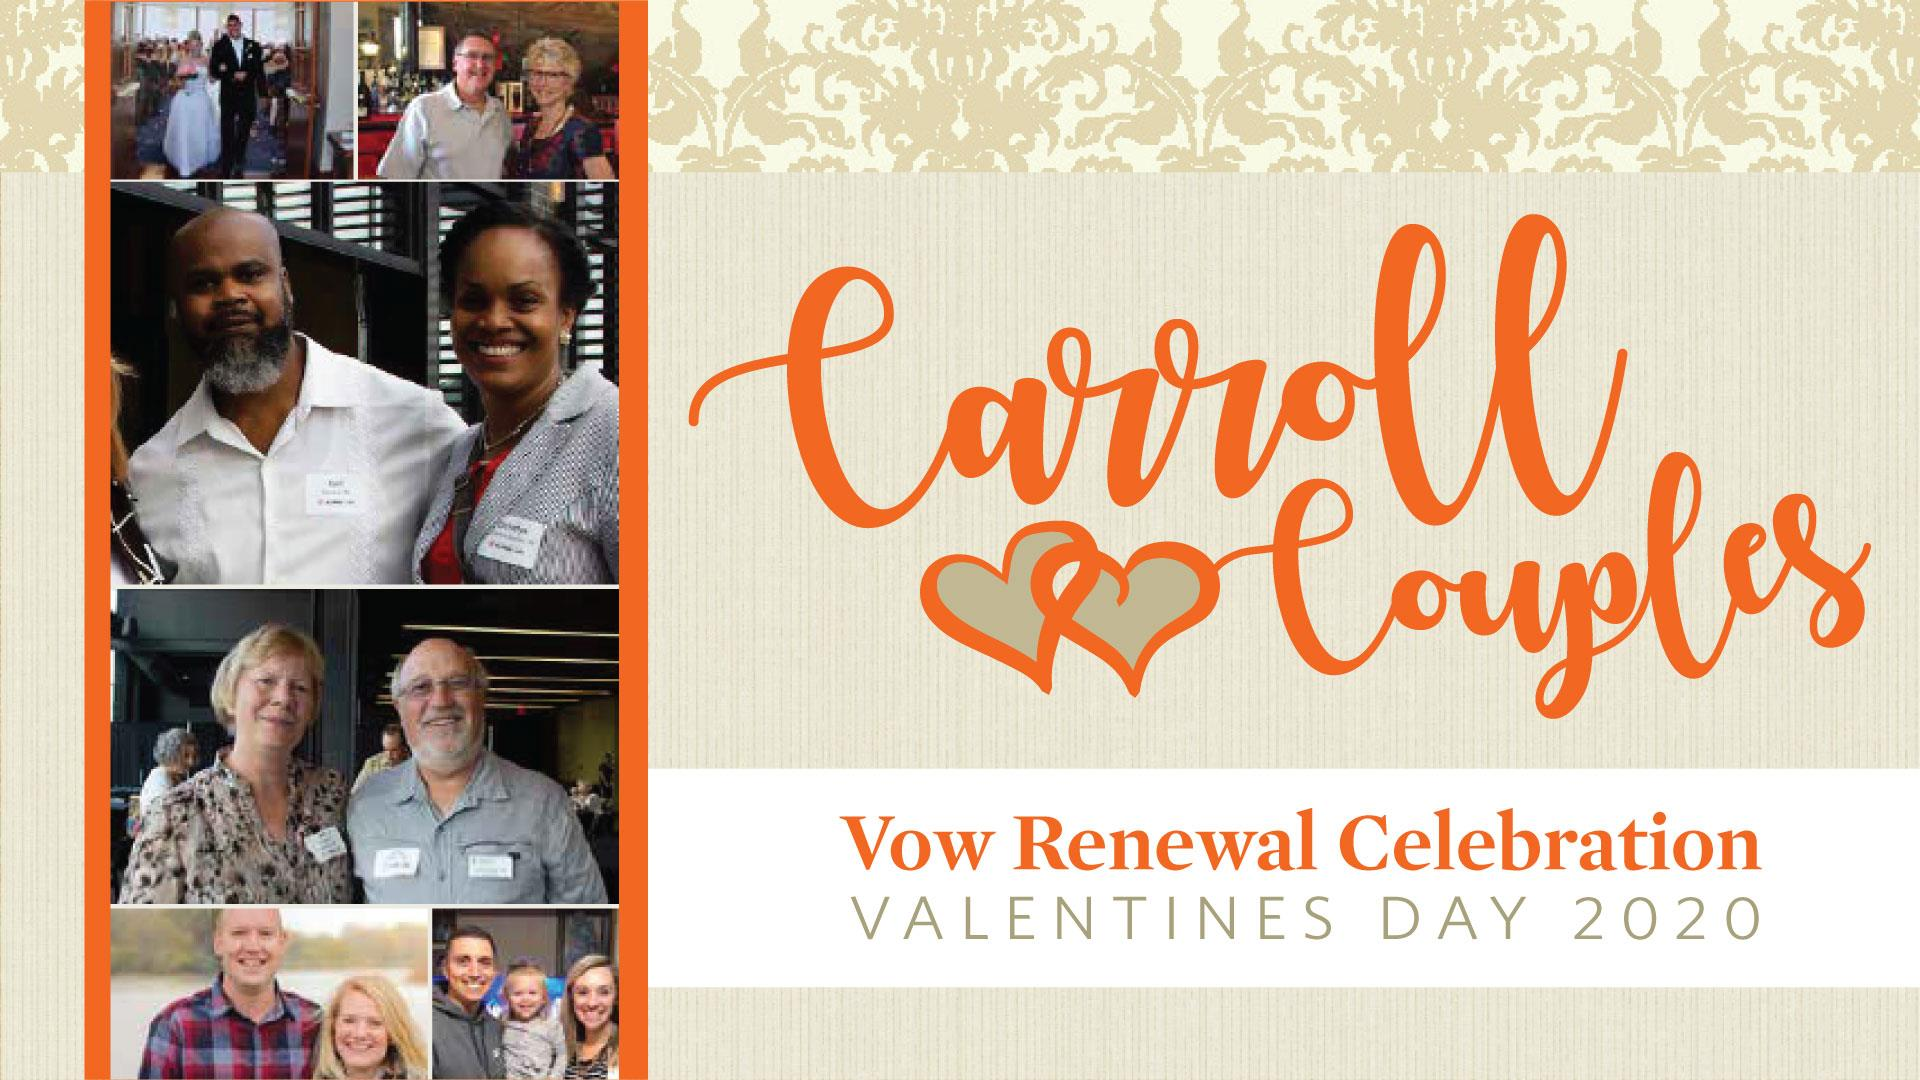 Carroll Alumni Couples | Vow Renewal Celebration